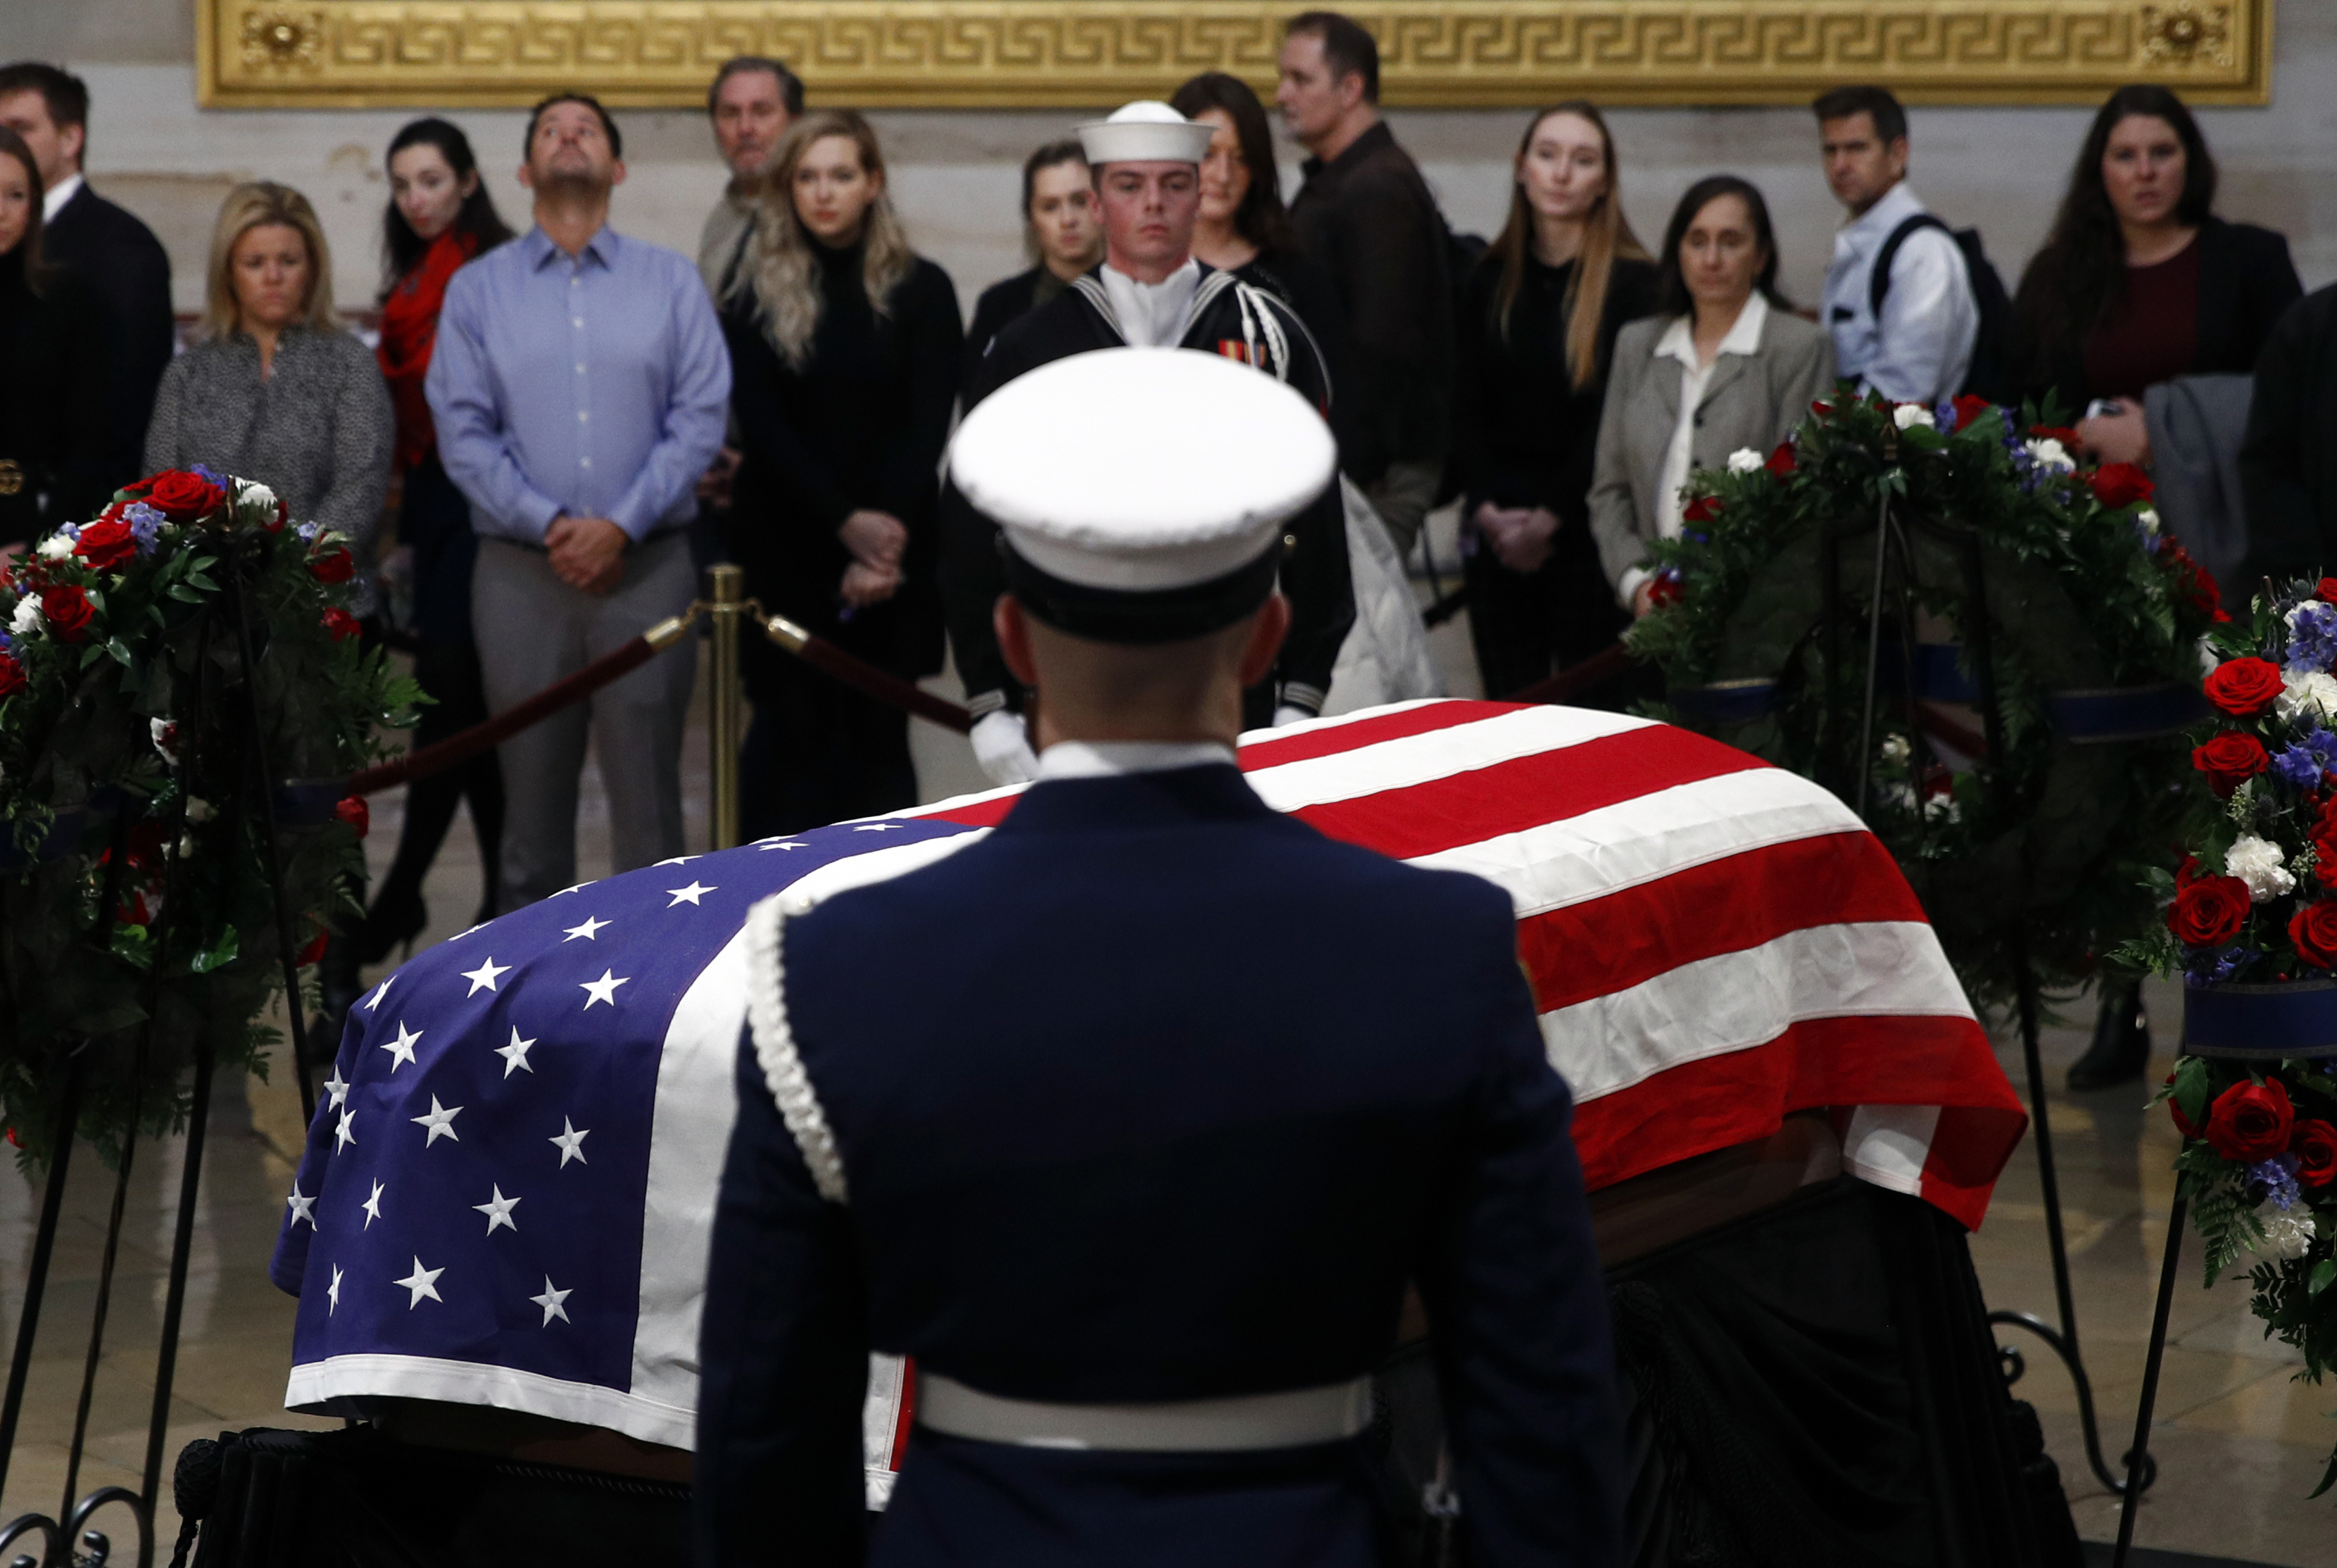 The flag-draped casket of former President George H.W. Bush lies in state in the Capitol Rotunda in Washington, Tuesday, Dec. 4, 2018. (AP Photo/Patrick Semansky)